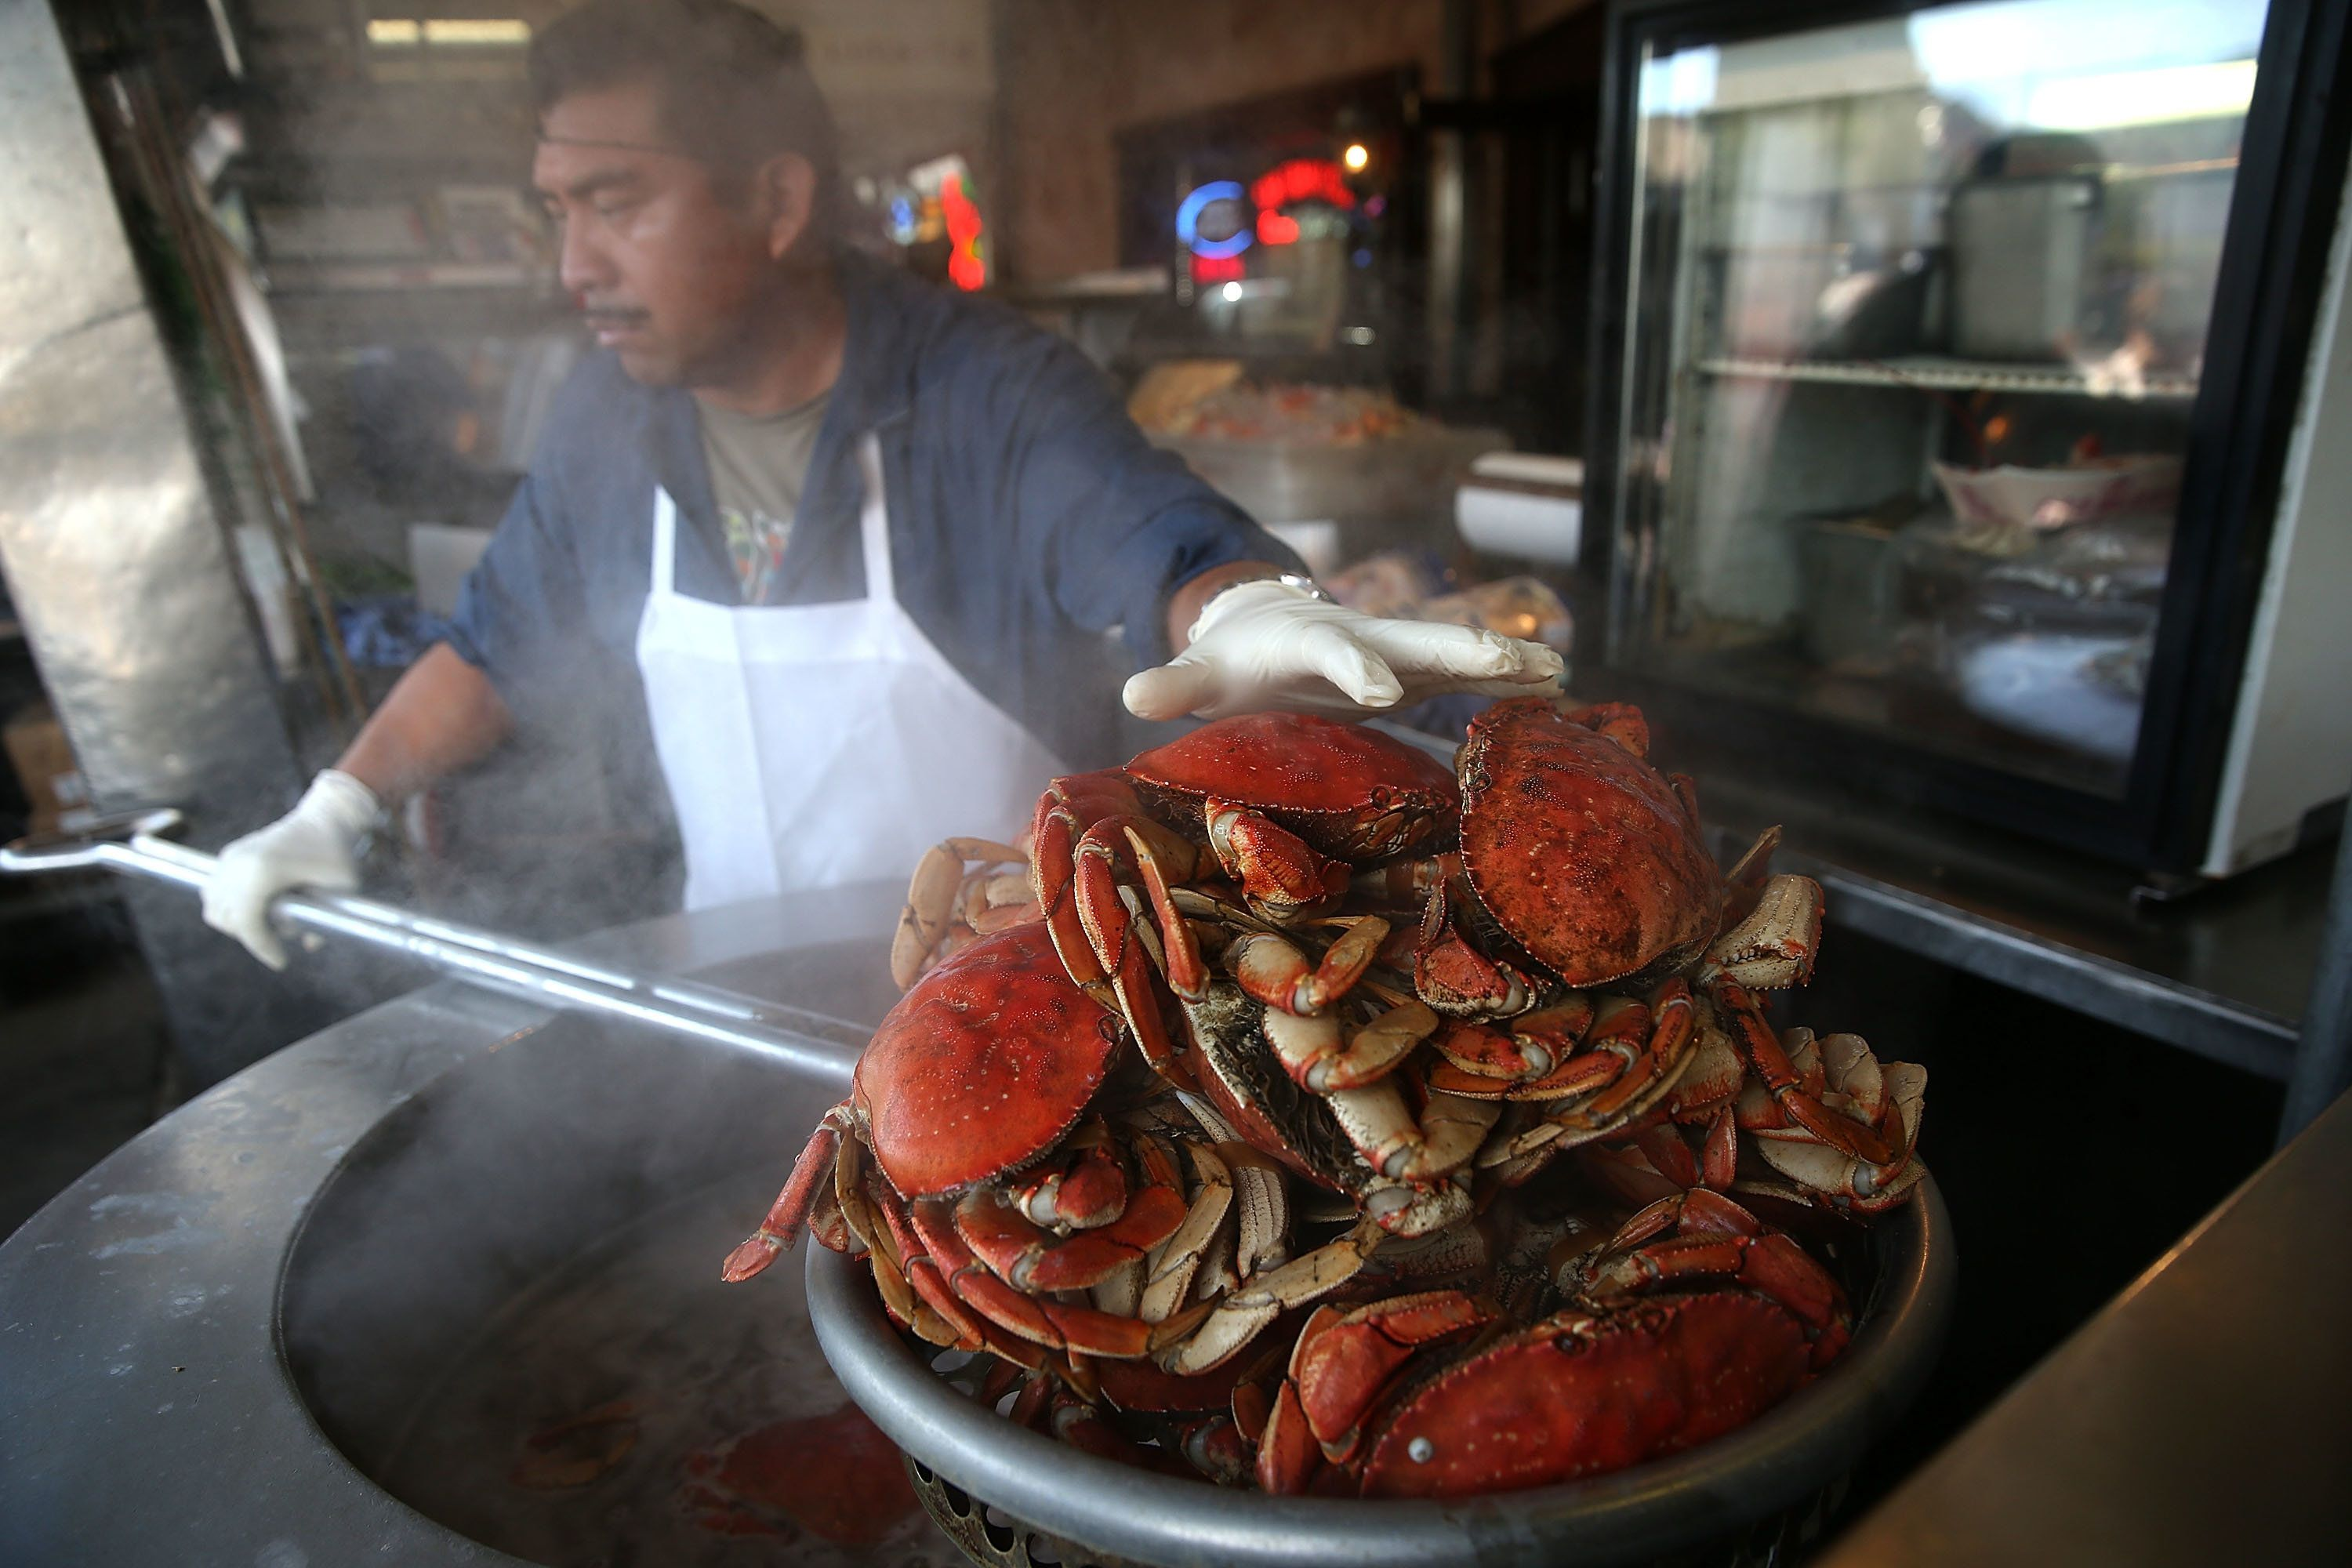 SAN FRANCISCO, CA - NOVEMBER 05:  A cook at Nick's Lighthouse prepares Dungeness crab on November 5, 2015 in San Francisco, California. The California Fish and Game Commission voted Thursday to suspend the recreational Dungeness crab fishing for 180 days due to the a high level of the deadly neurotoxin domoic acid that has been found in the meat and viscera of Dungeness crabs caught off the coast of San Francisco.  (Photo by Justin Sullivan/Getty Images)